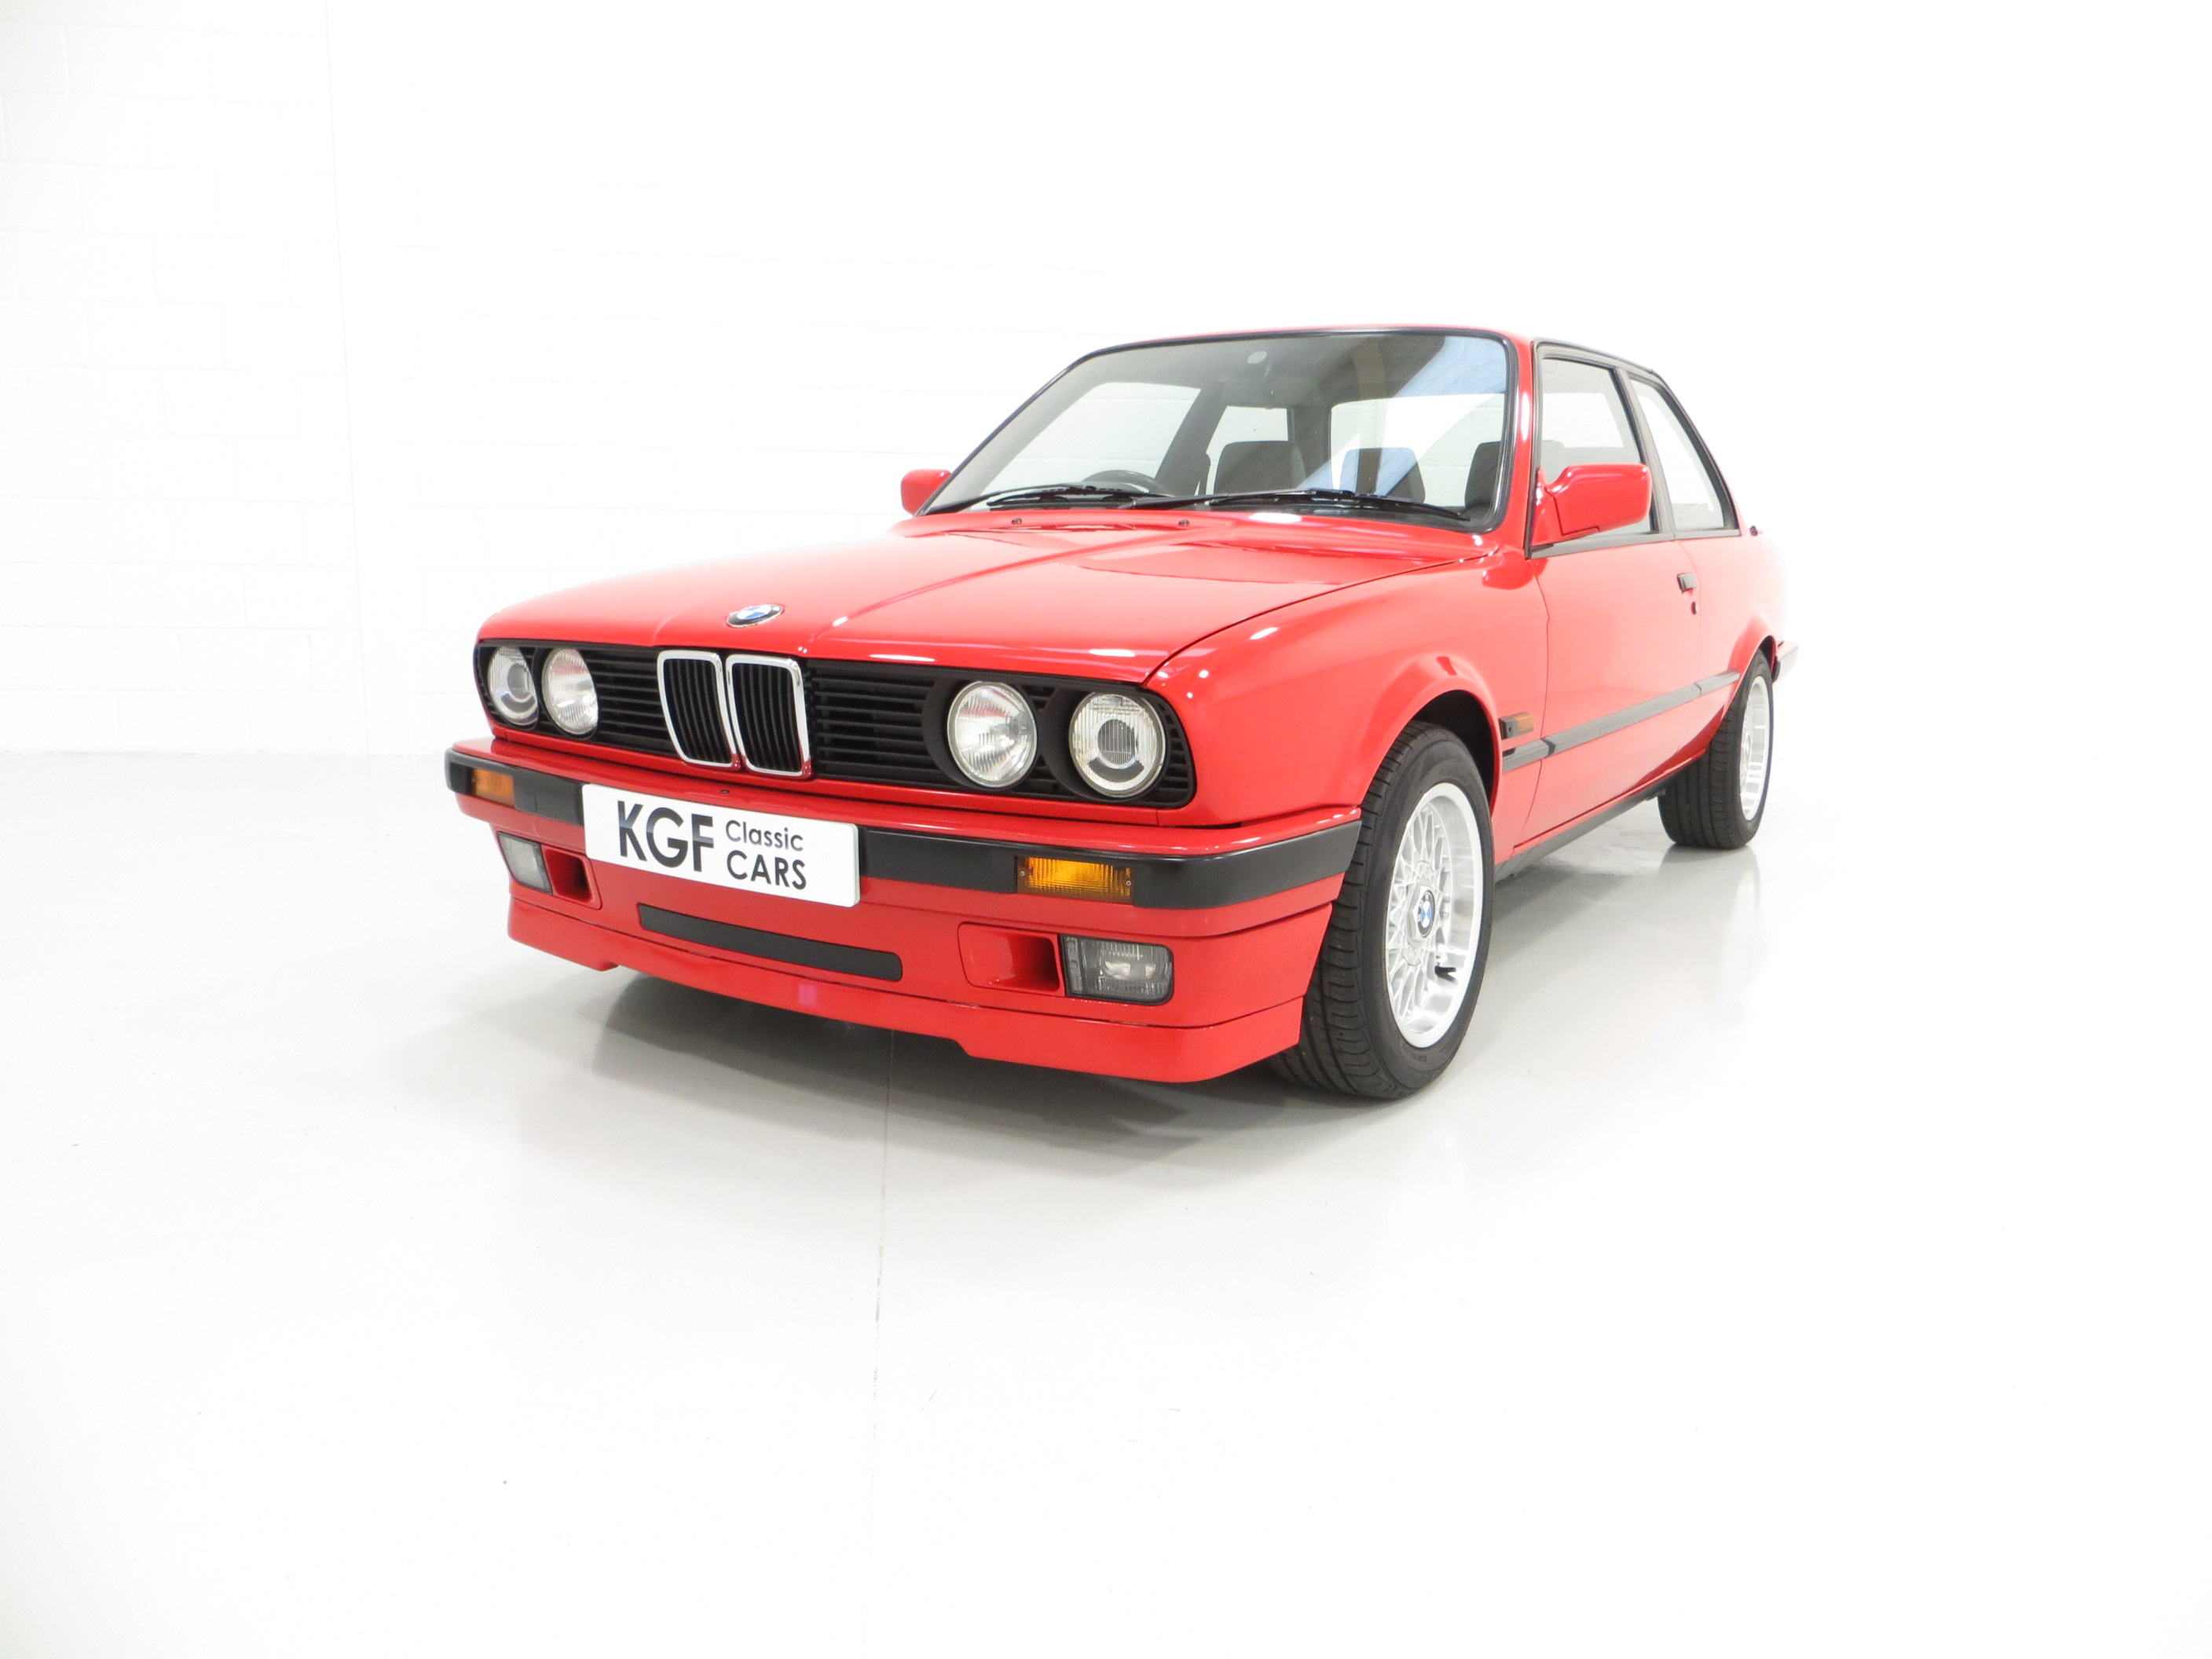 A Collectable And Immaculate Bmw E30 318is Sold Pe1 Retro Rides